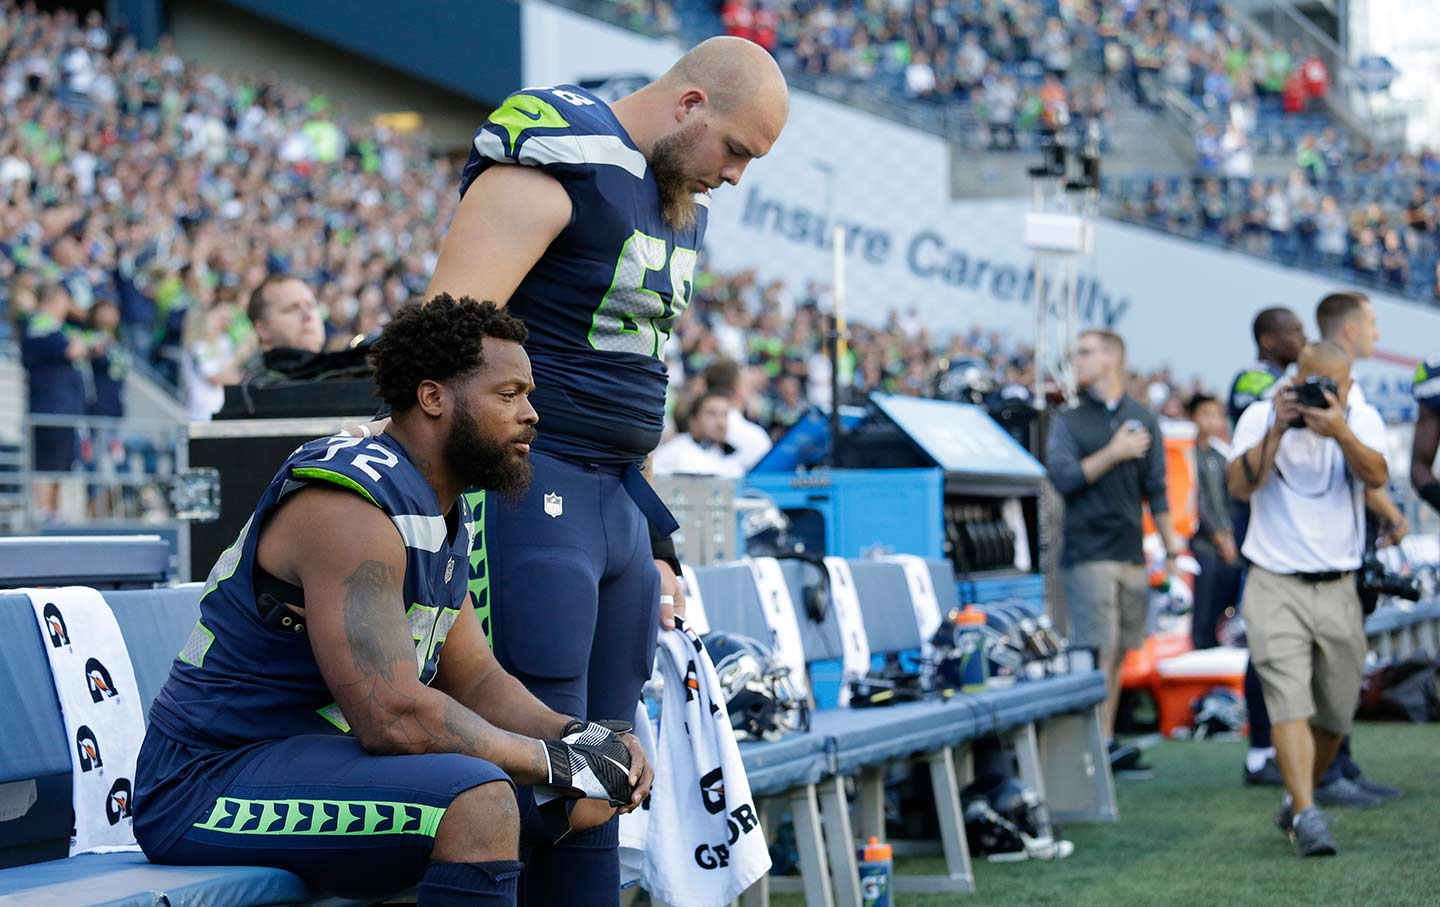 Seattle Seahawks Get Rid of Anthem Kneeler Michael Bennett in a Hurry Reportedly Say Hes a Pain in the Ass